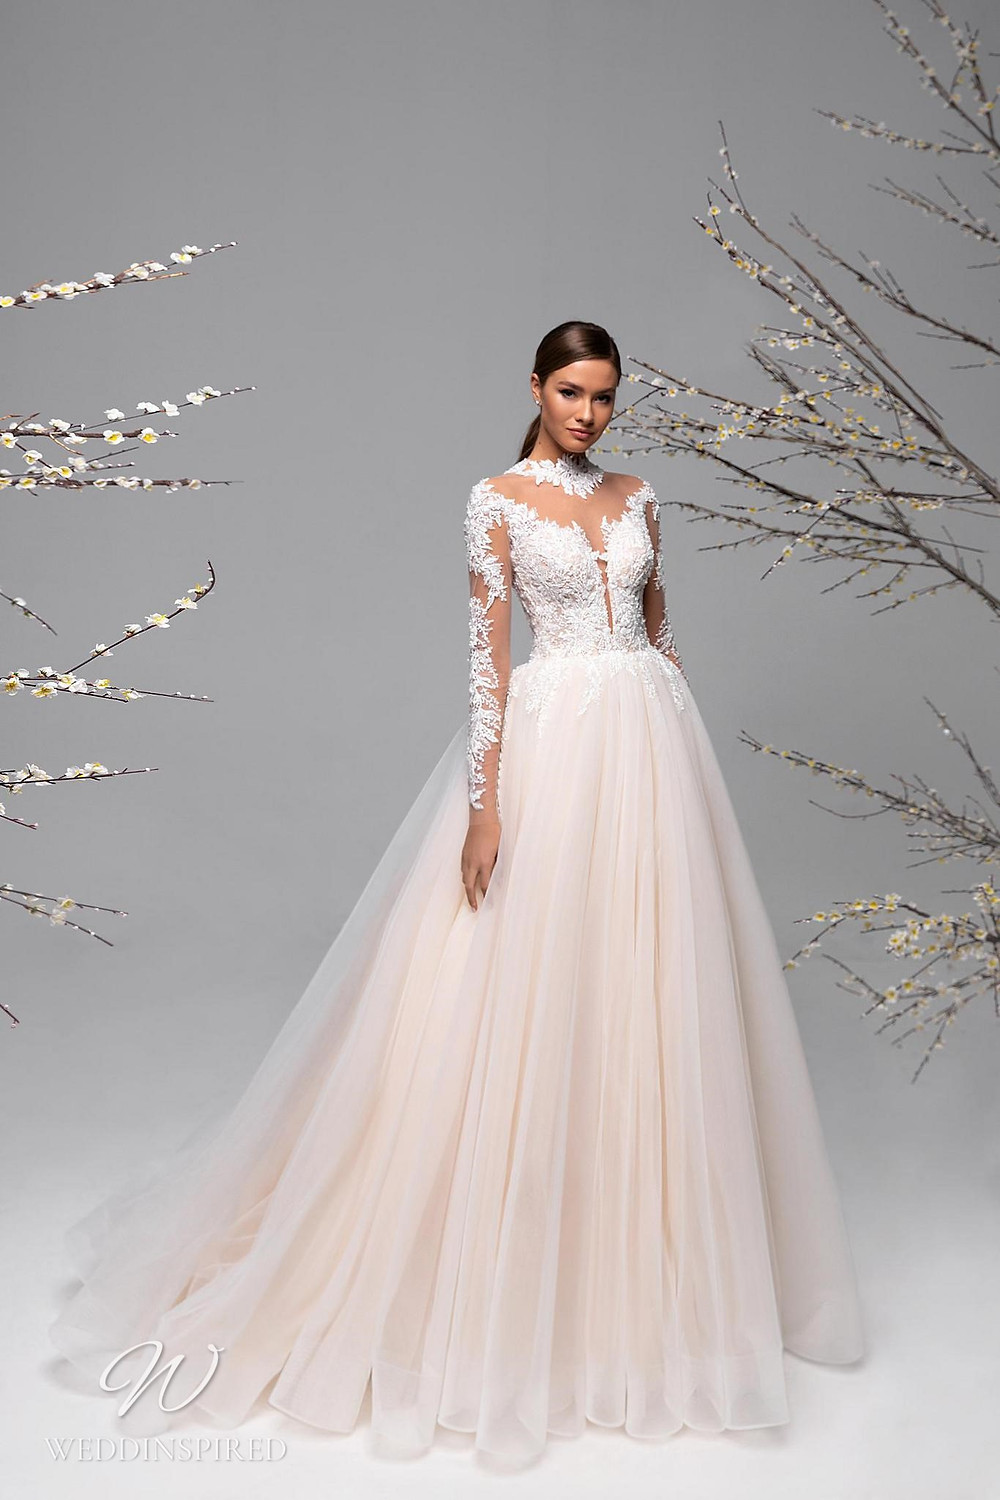 A Ricca Sposa blush lace and tulle ball gown wedding dress with long illusion sleeves